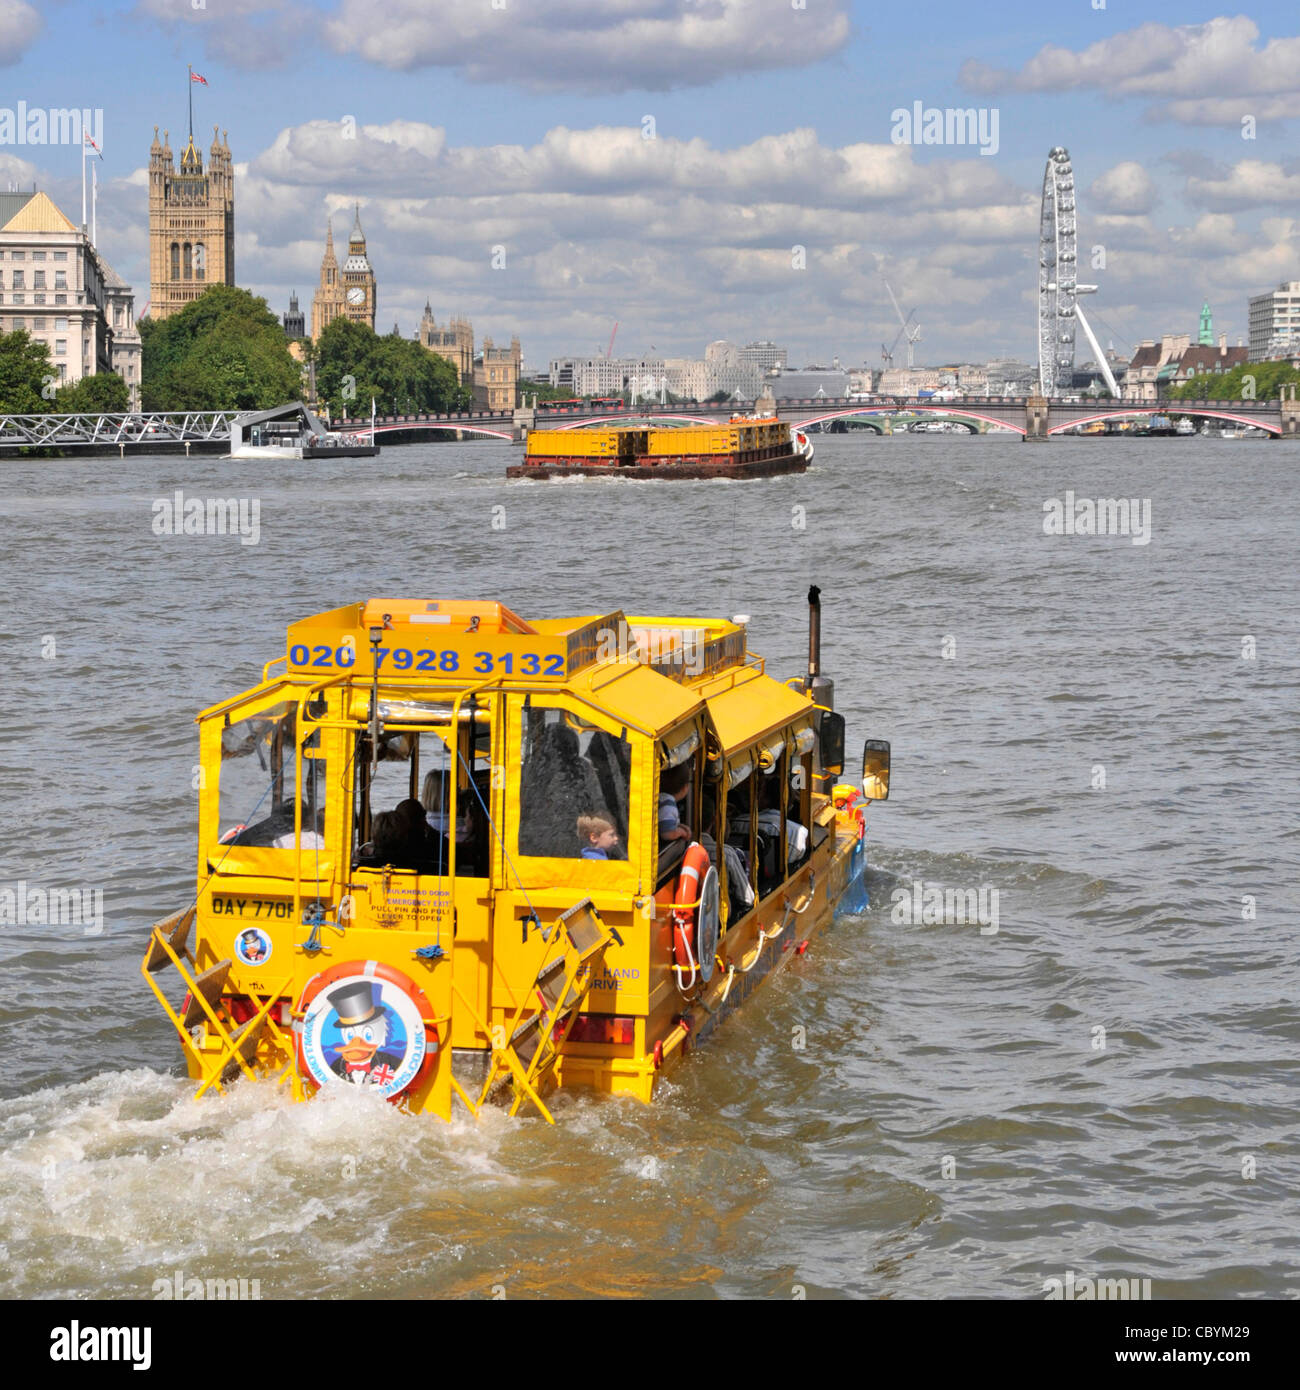 Duck Tours amphibious vehicle on River Thames sightseeing trip towards Westminster - Stock Image